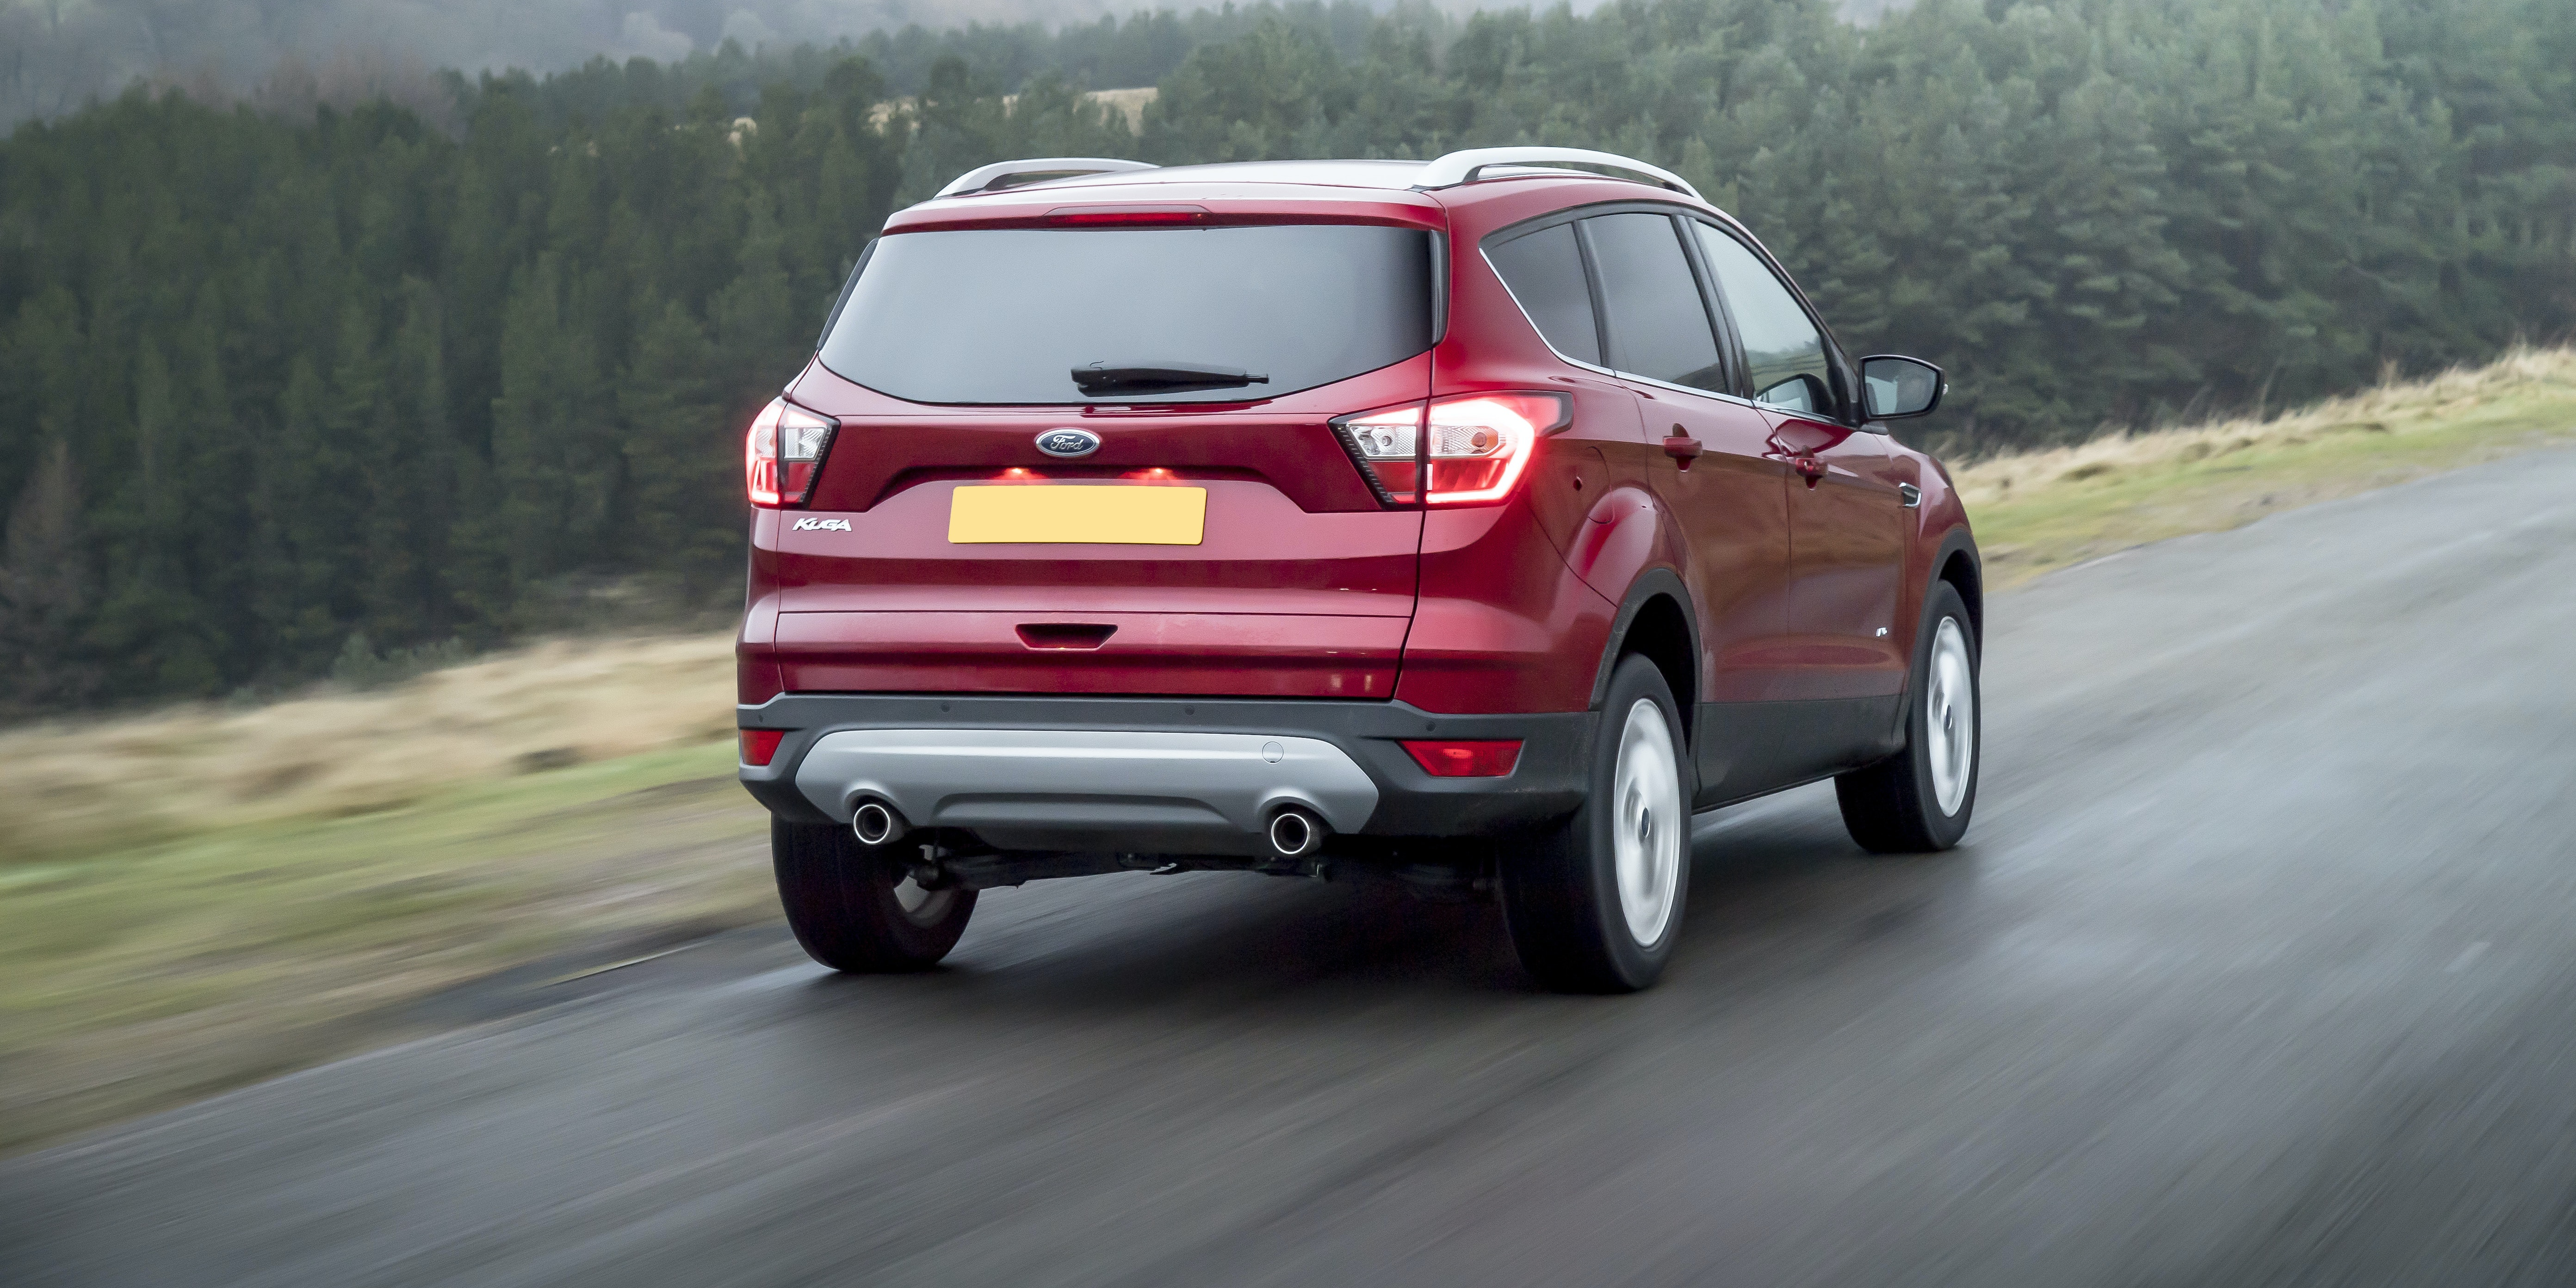 ST-Line models have stiff suspension that make the Kuga feel a bit jiggly over bumps